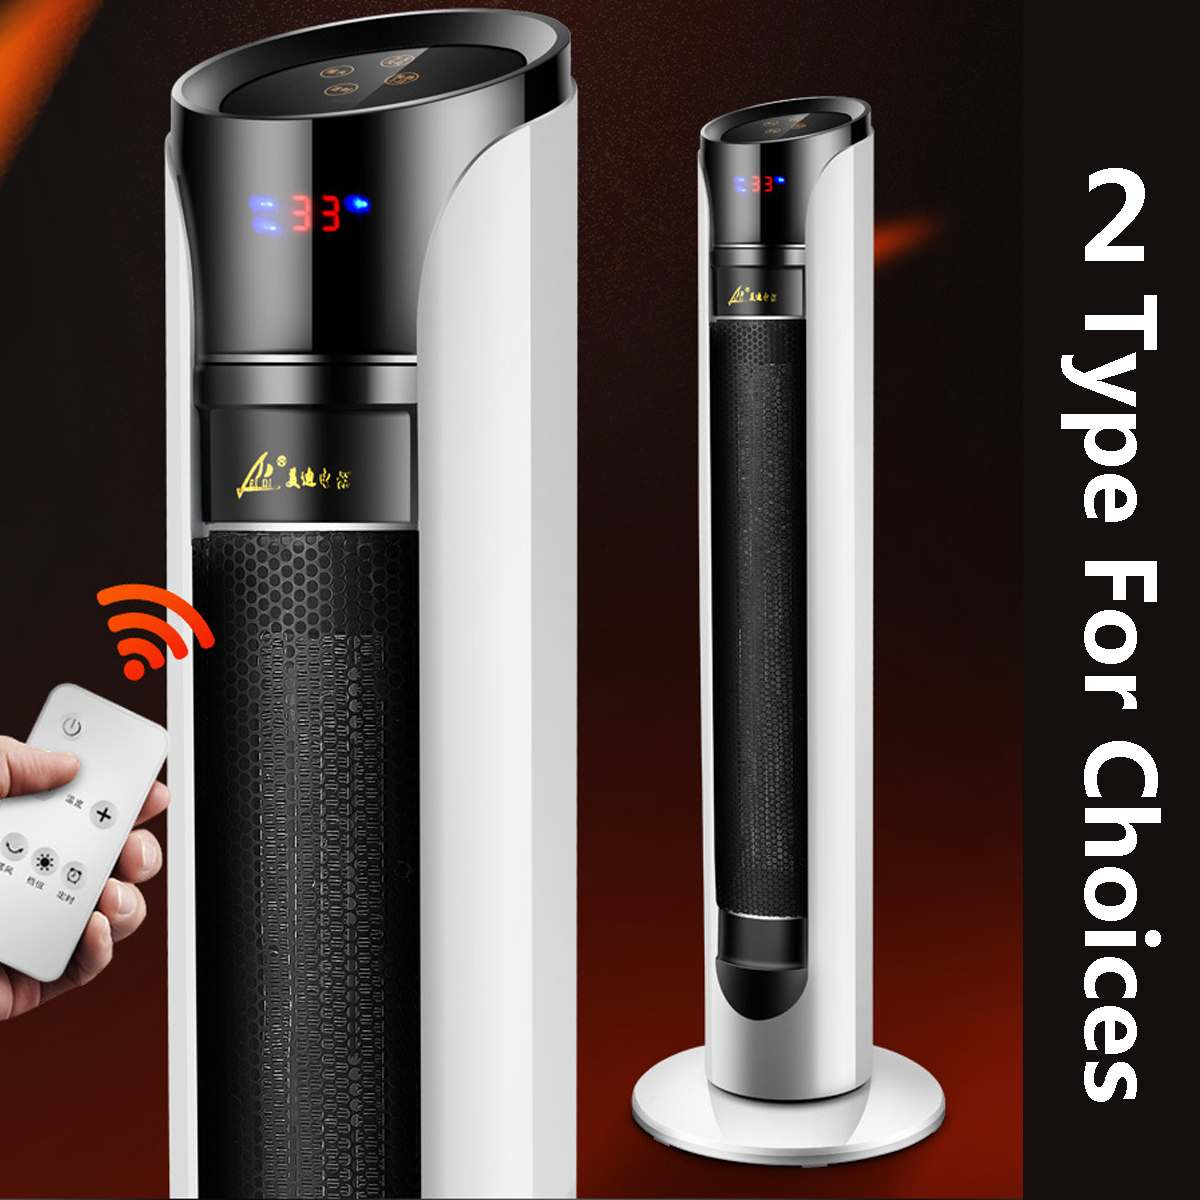 2000W 220V Electric Heater PTC AdjustableTemperature Heating Electric Heaters Home Air Warmer Tower Fan Remote Control Timing